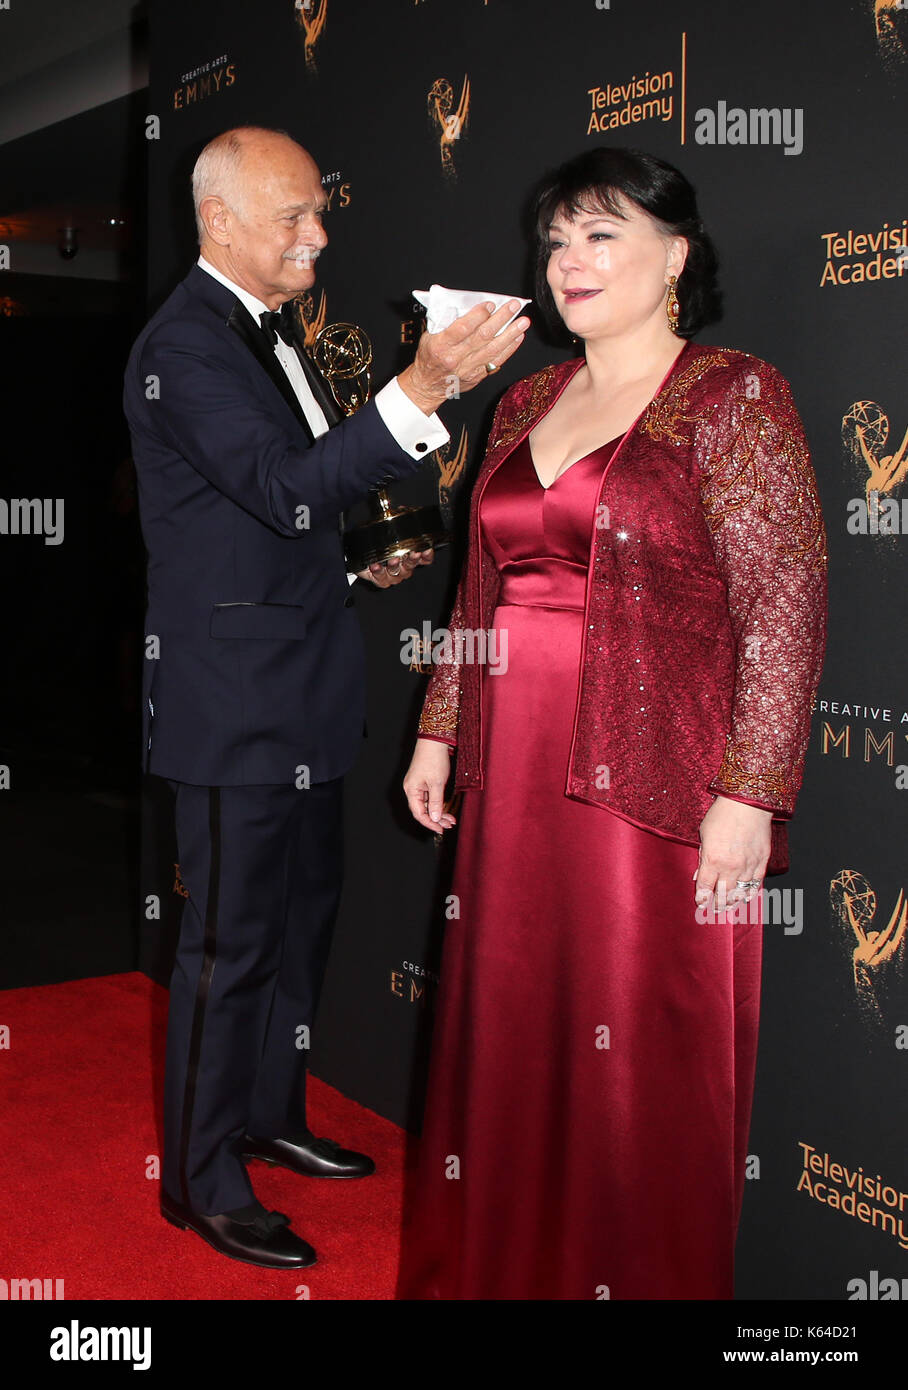 Delta burke and gerald mcraney images for Are delta burke and gerald mcraney still married